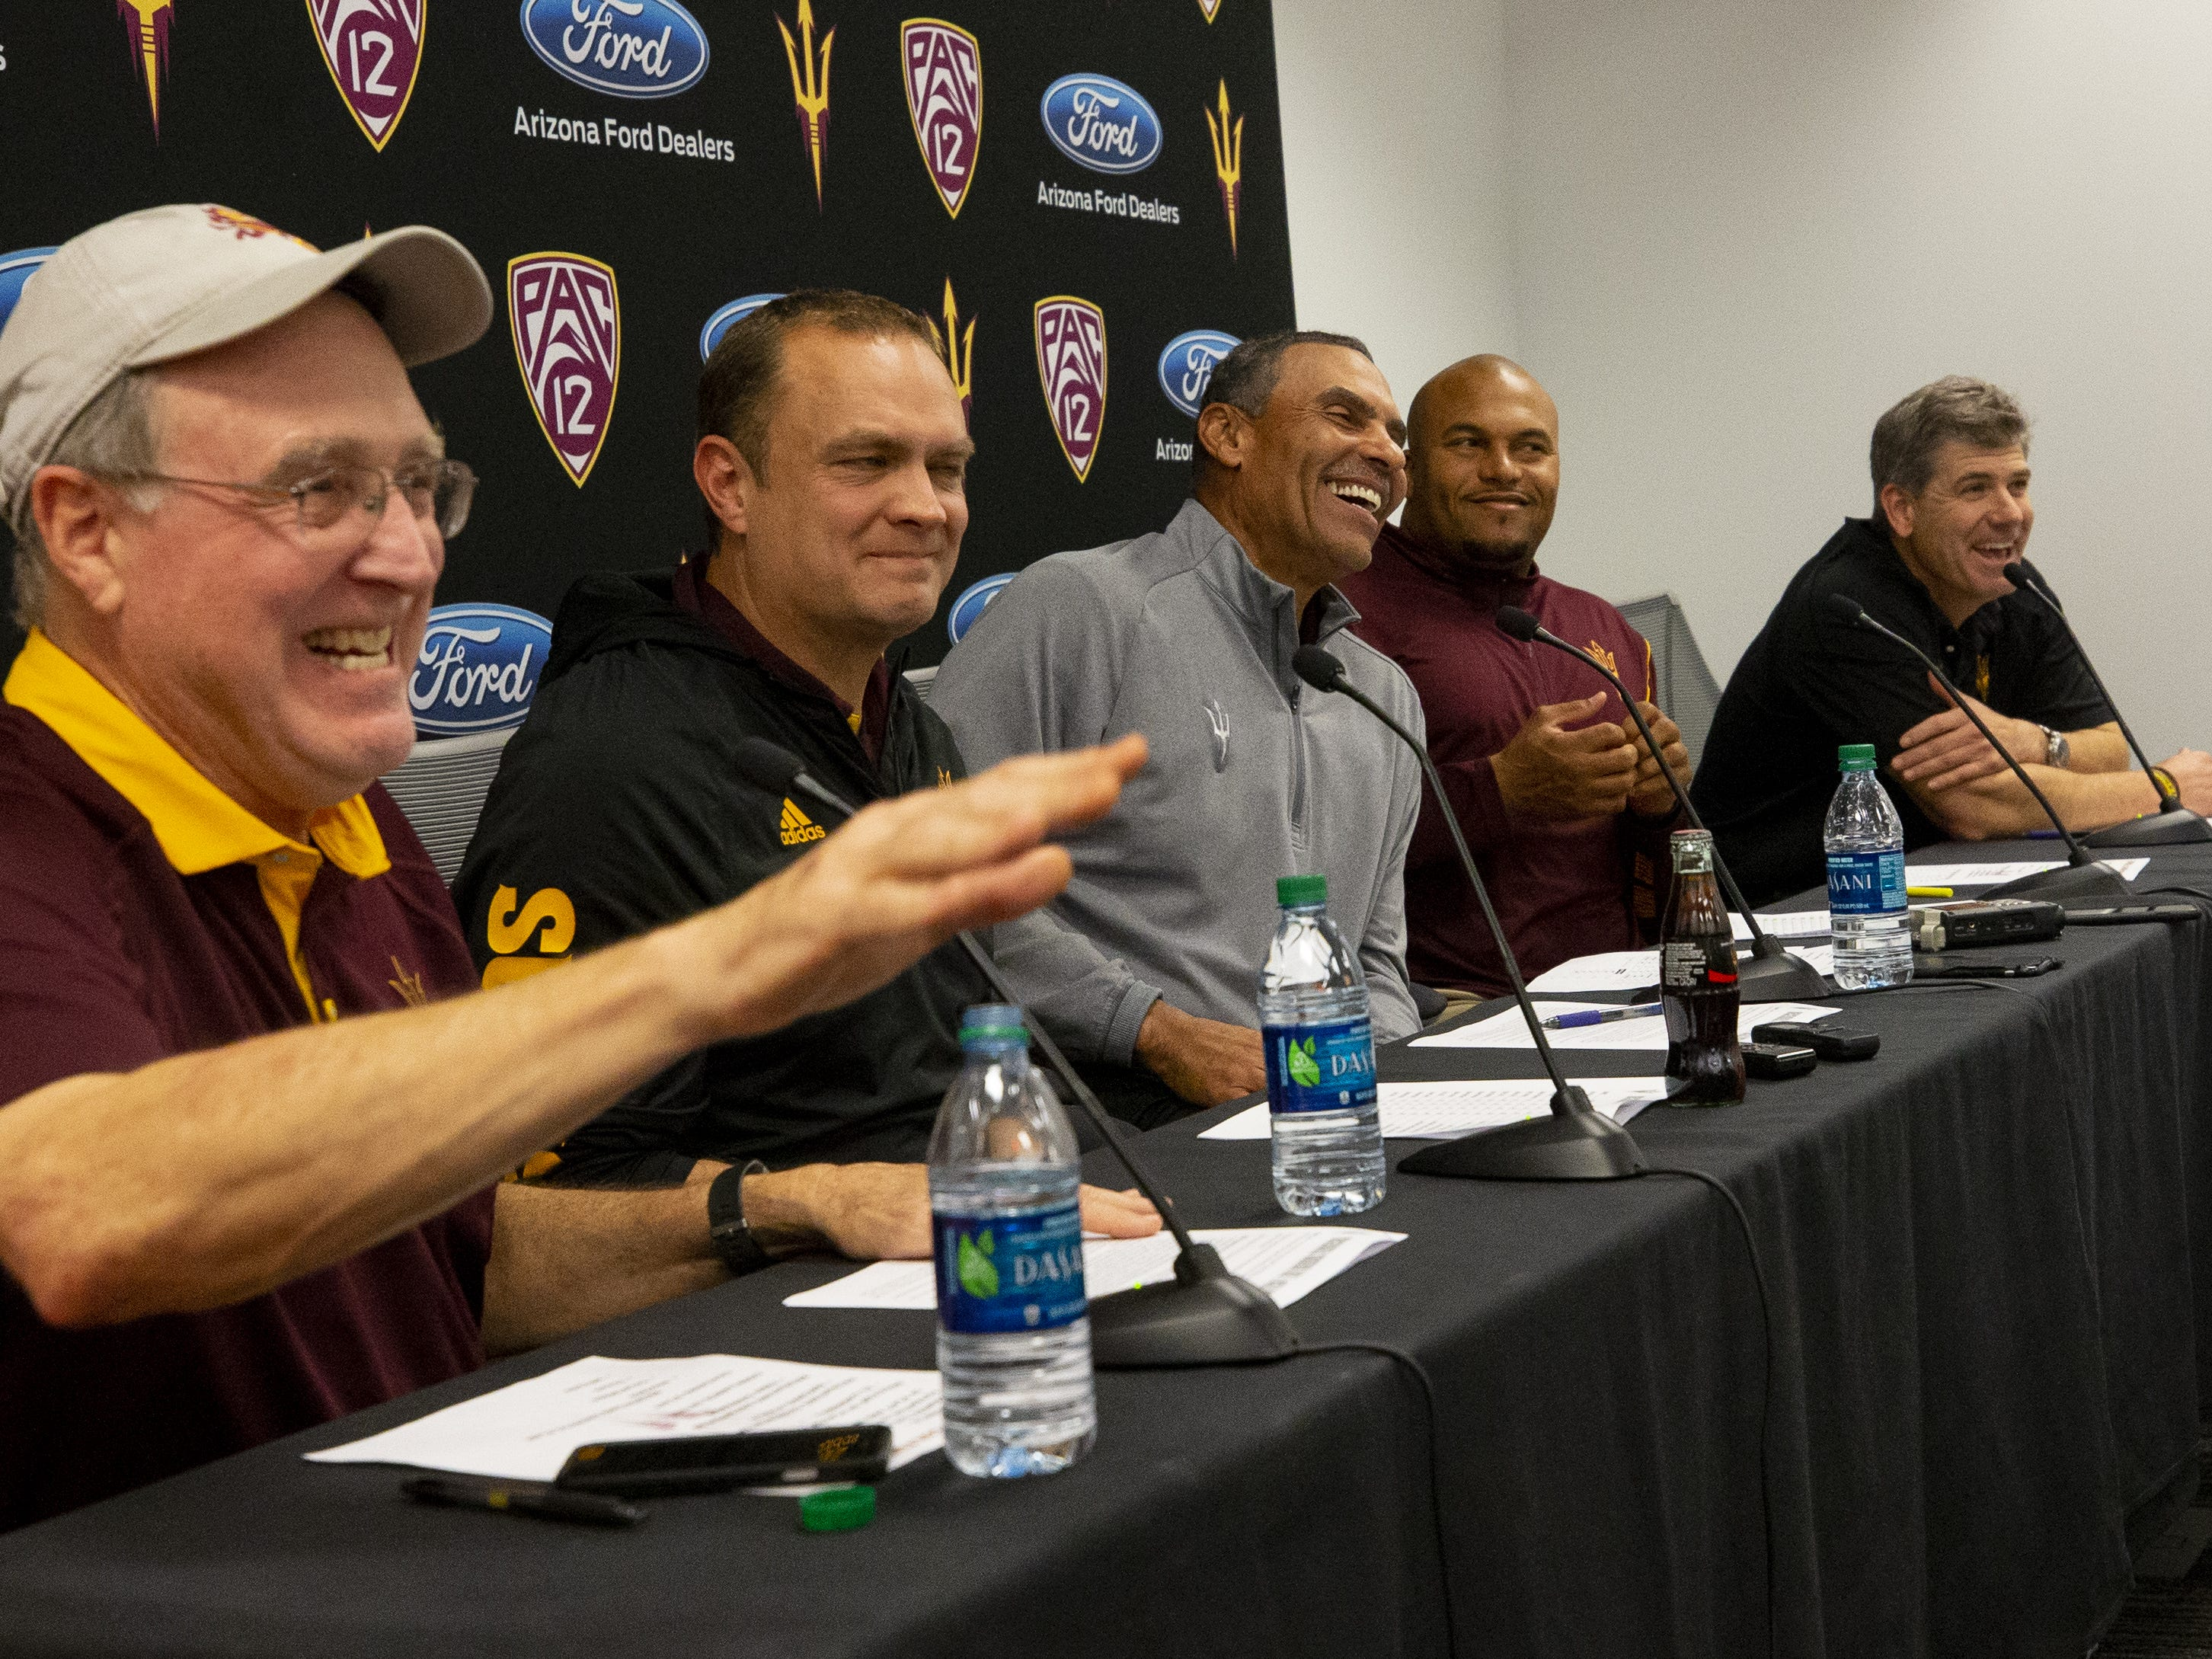 ASU director of player personnel Al Luginbill, defensive coordinator Danny Gonzales, head football coach Herm Edwards, linebackers coach Antonio Pierce, offensive coordinator Rob Likens talk about the 2019 recruiting class during a press conference on December 19, 2018.